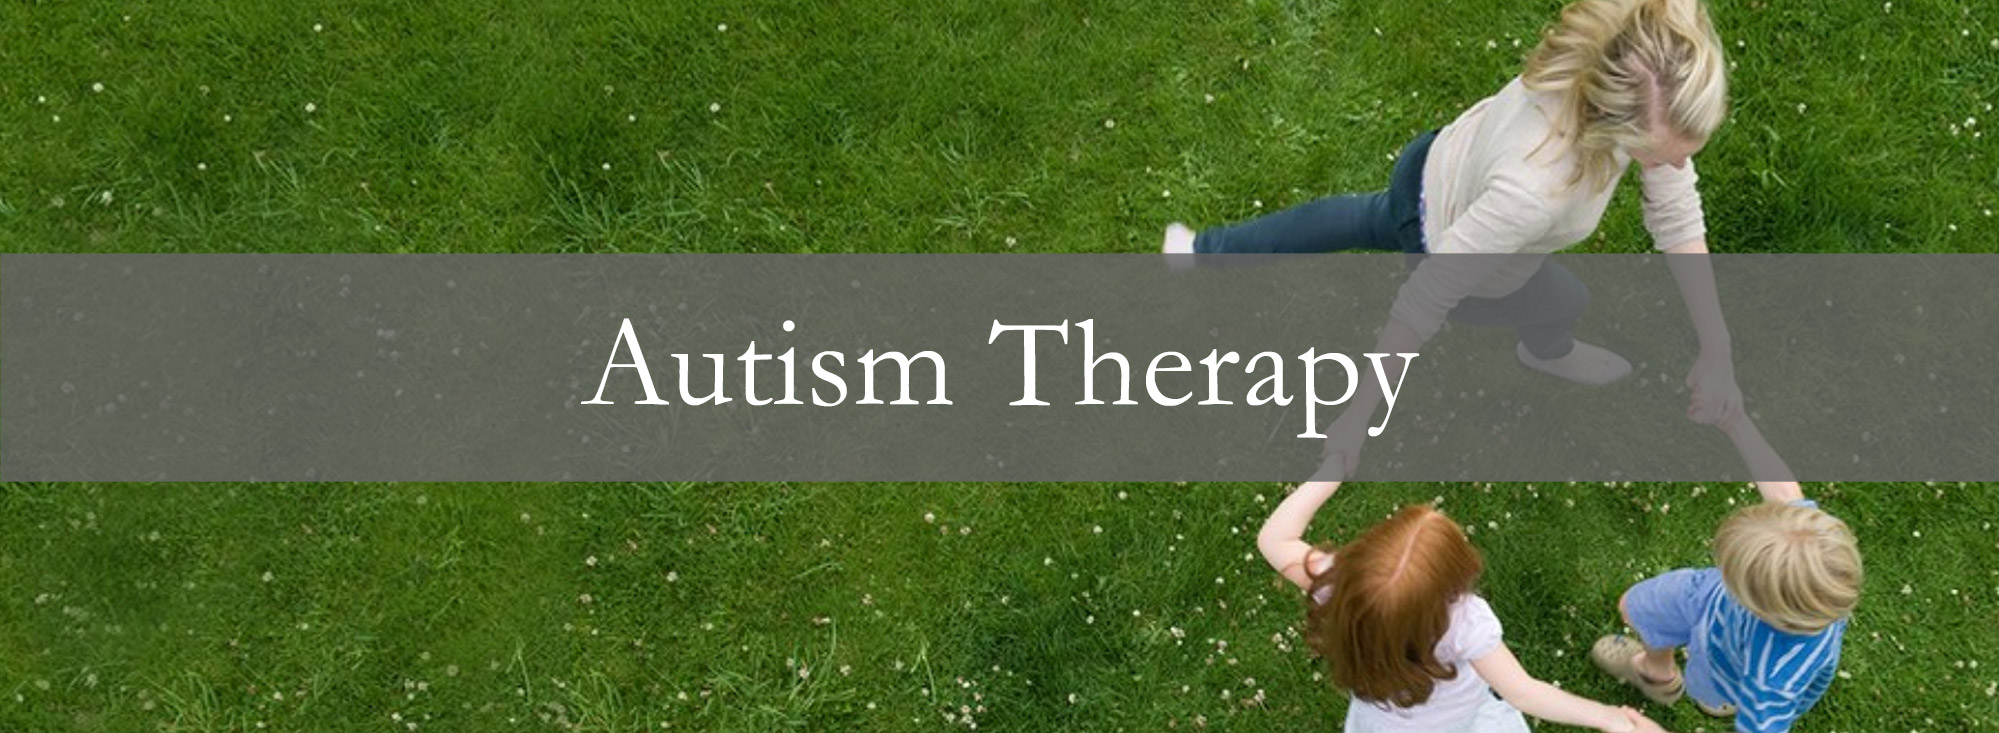 Autism Therapy